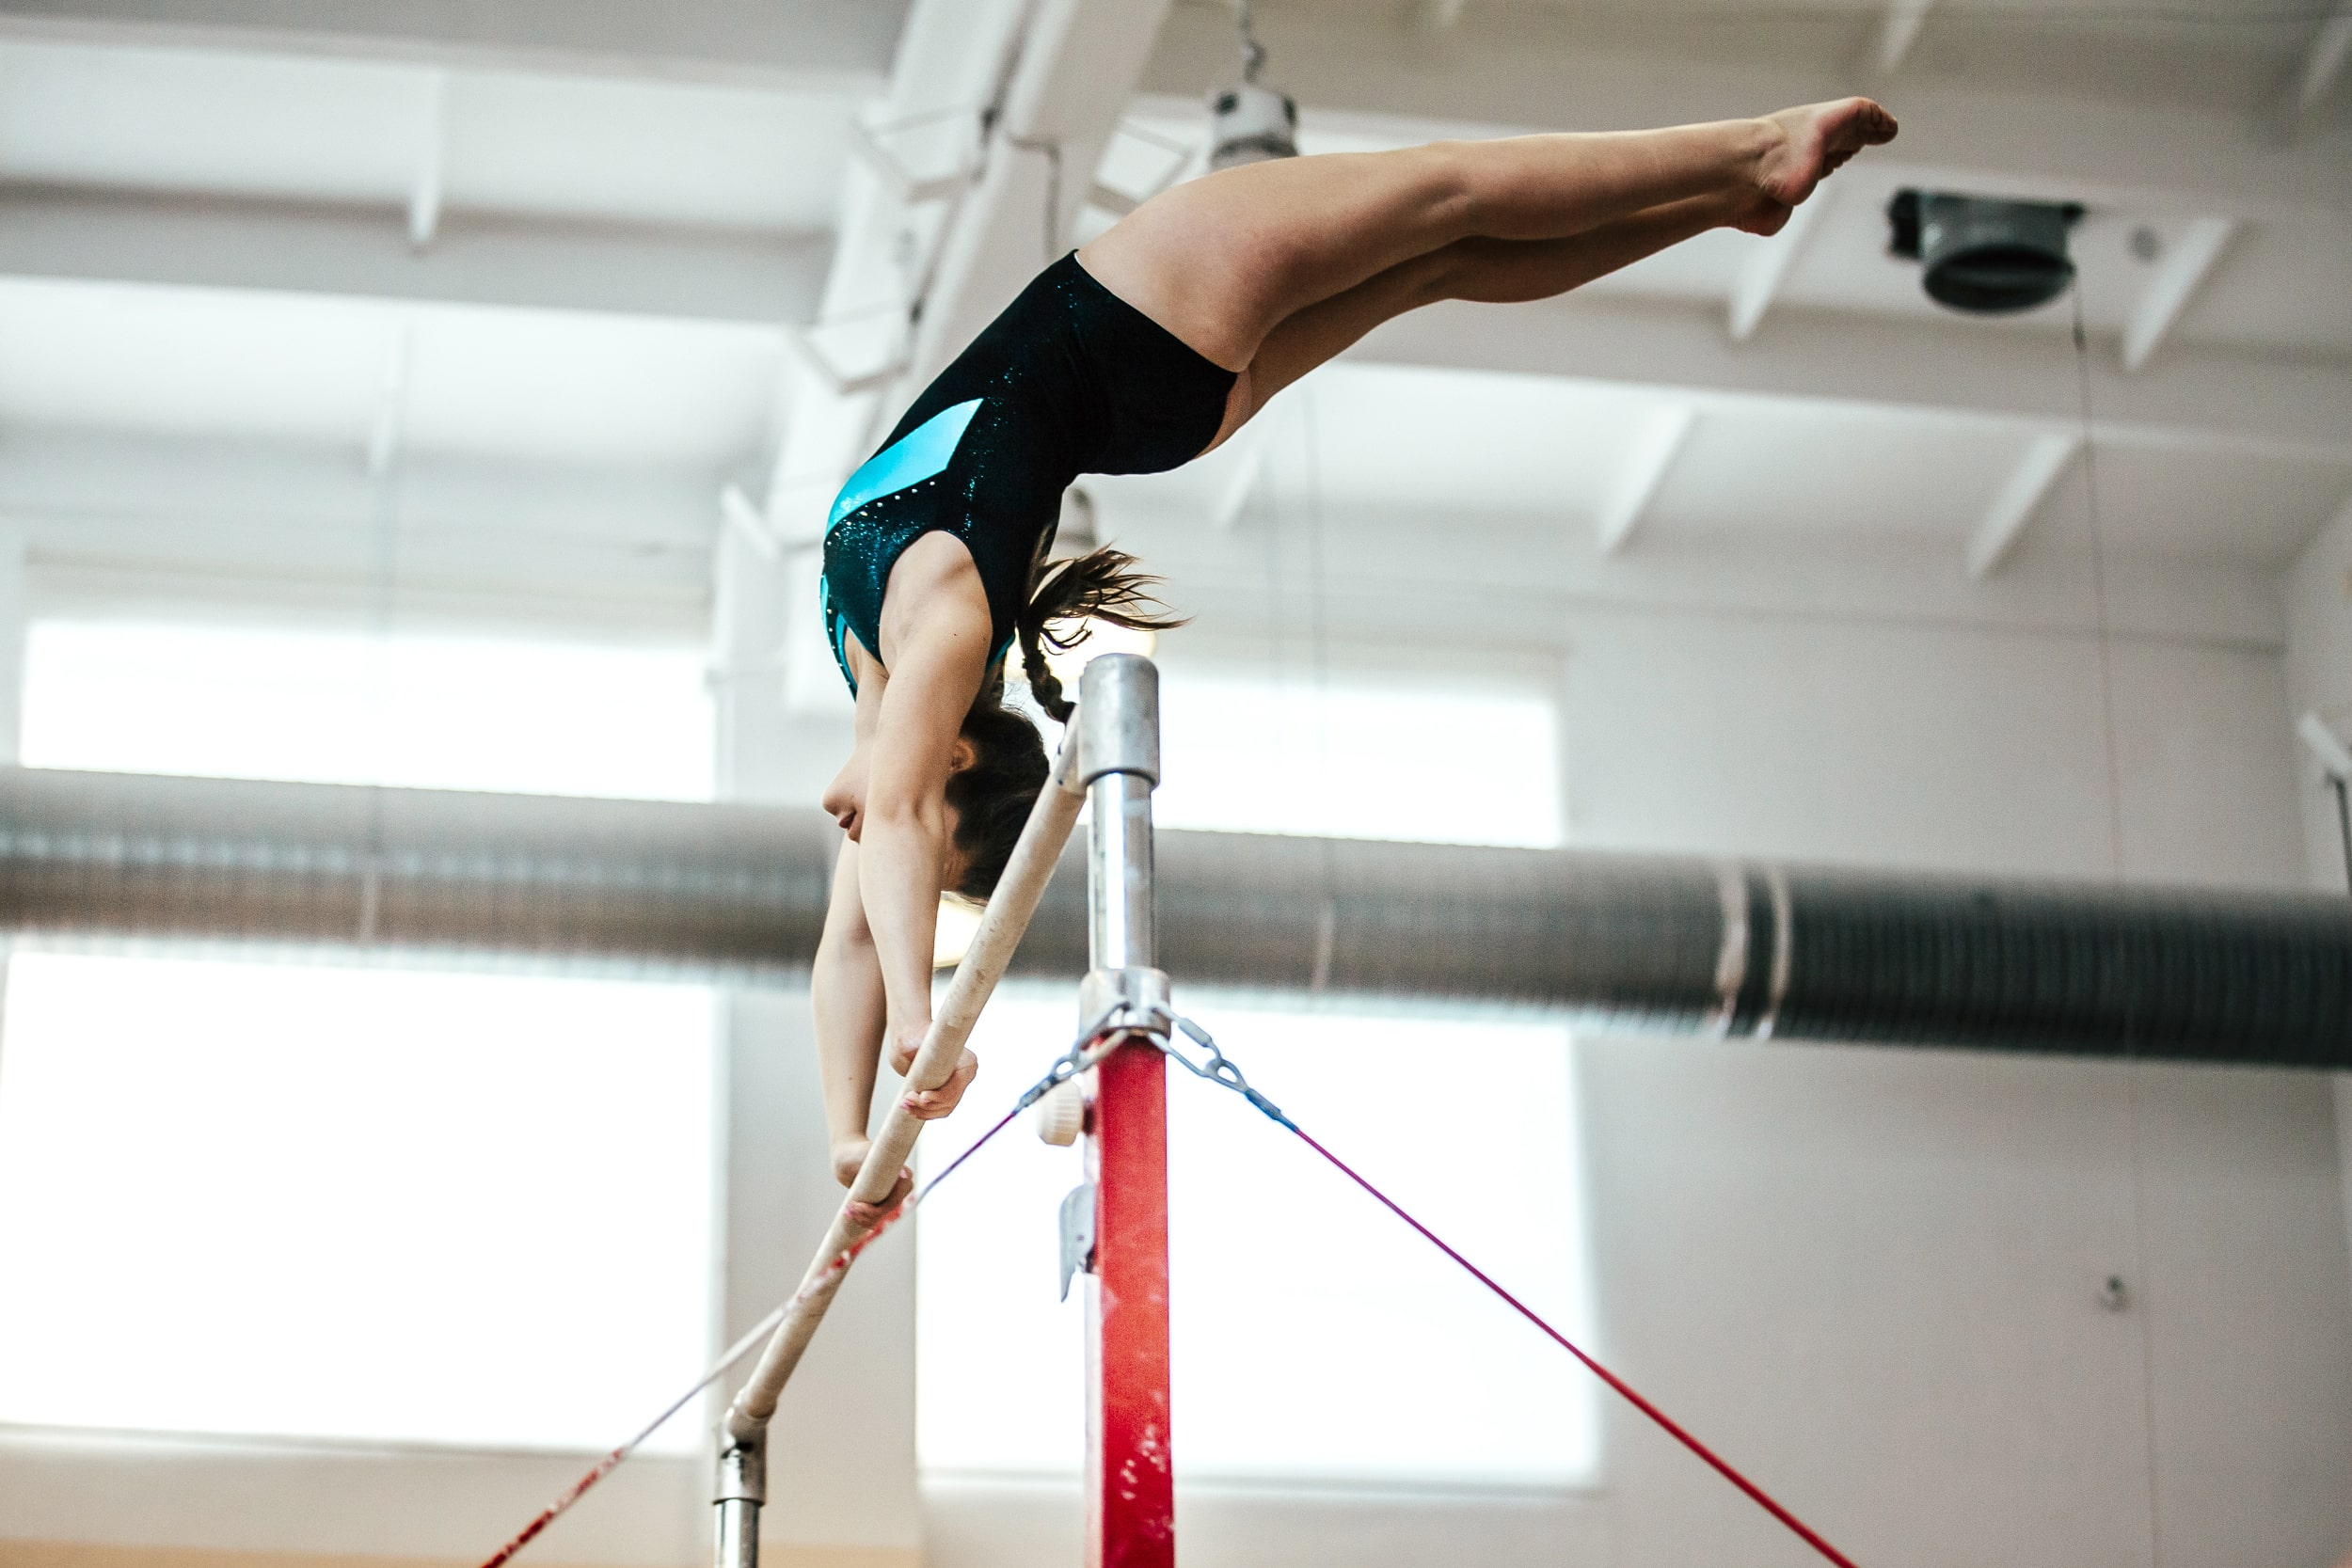 Girl using the high bar in a gymnastics gym